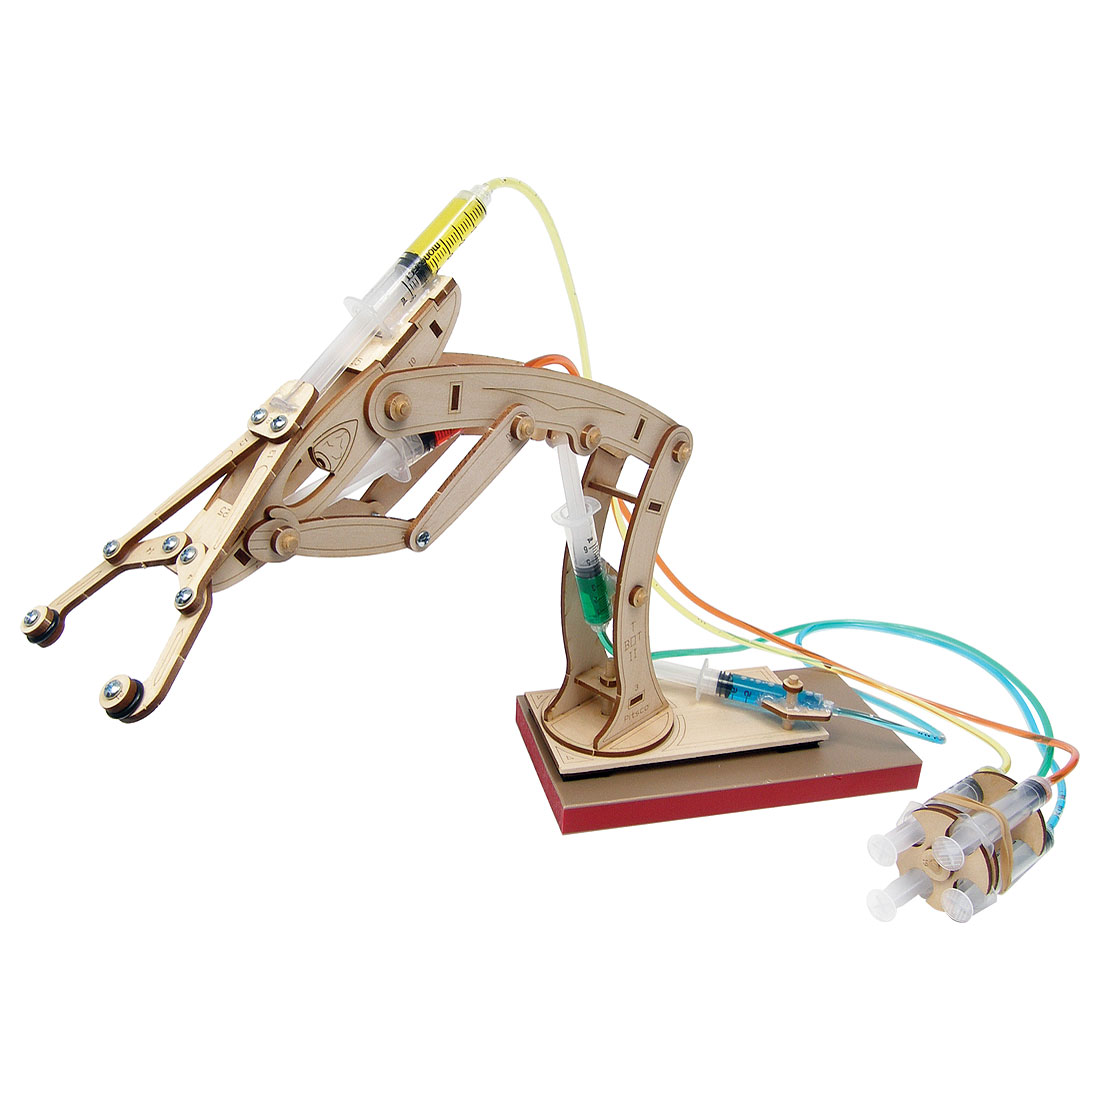 Simple Hydraulic Robotic Arm Designs : T bot ii hydraulic arm